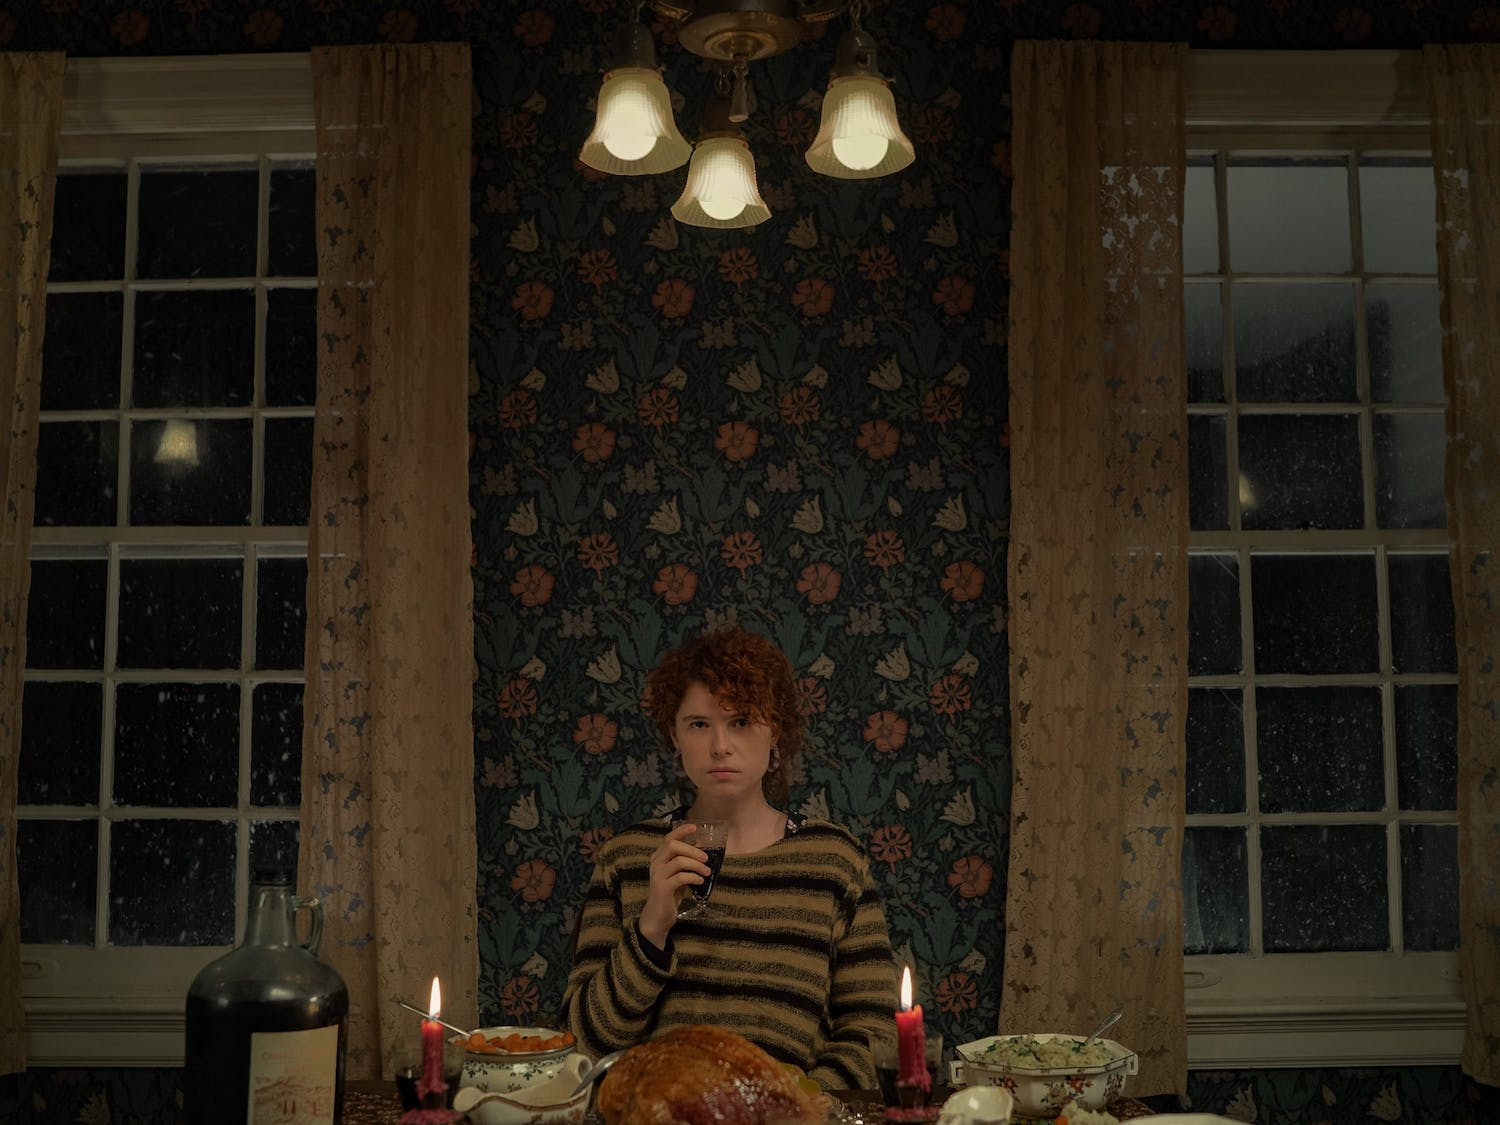 Jessie Buckley, plays the lead in the new Kauffman thriller, alongside Jessie Plemons.